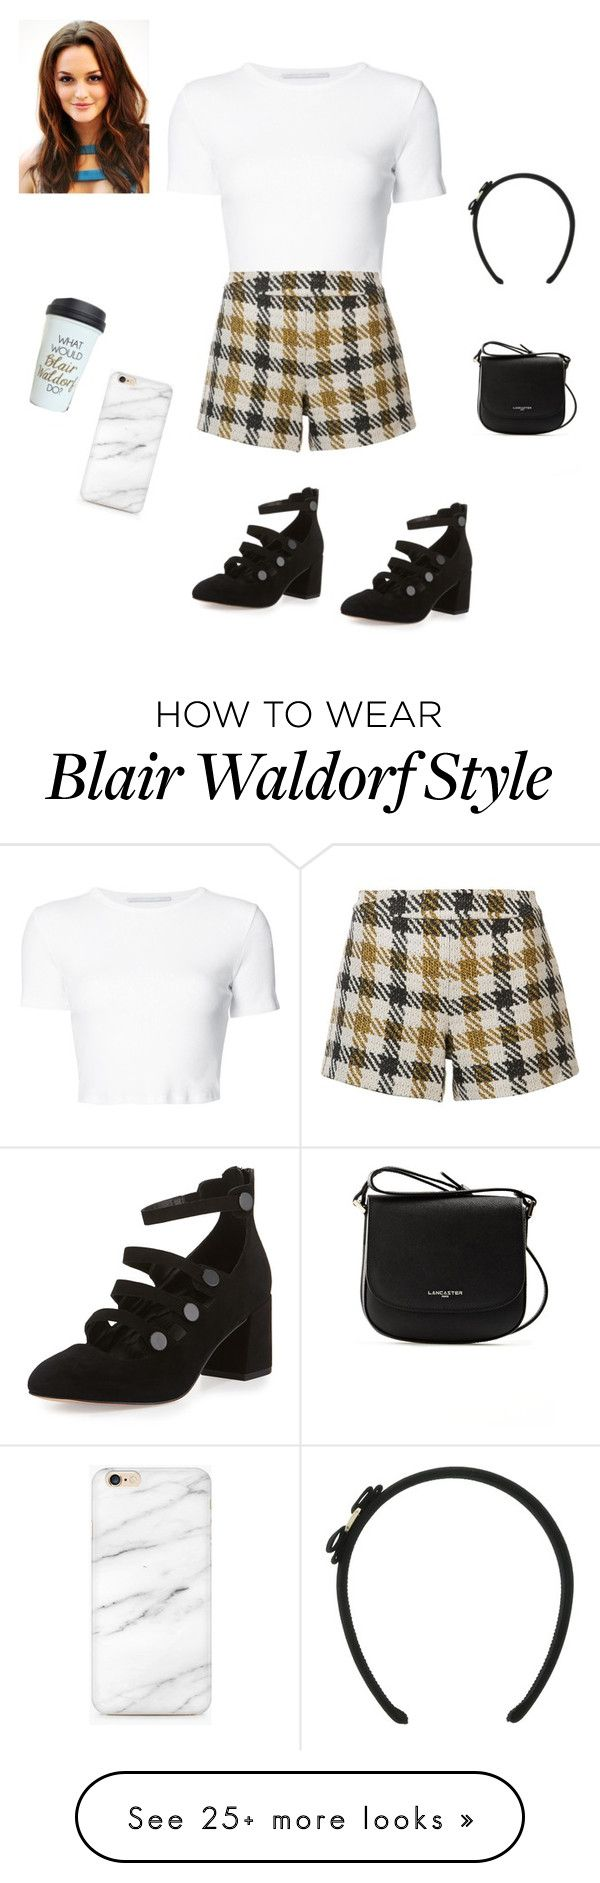 """Blair Waldorf"" by omg-gab on Polyvore featuring Rosetta Getty, Alice + Olivia, Rebecca Minkoff and Lancaster"